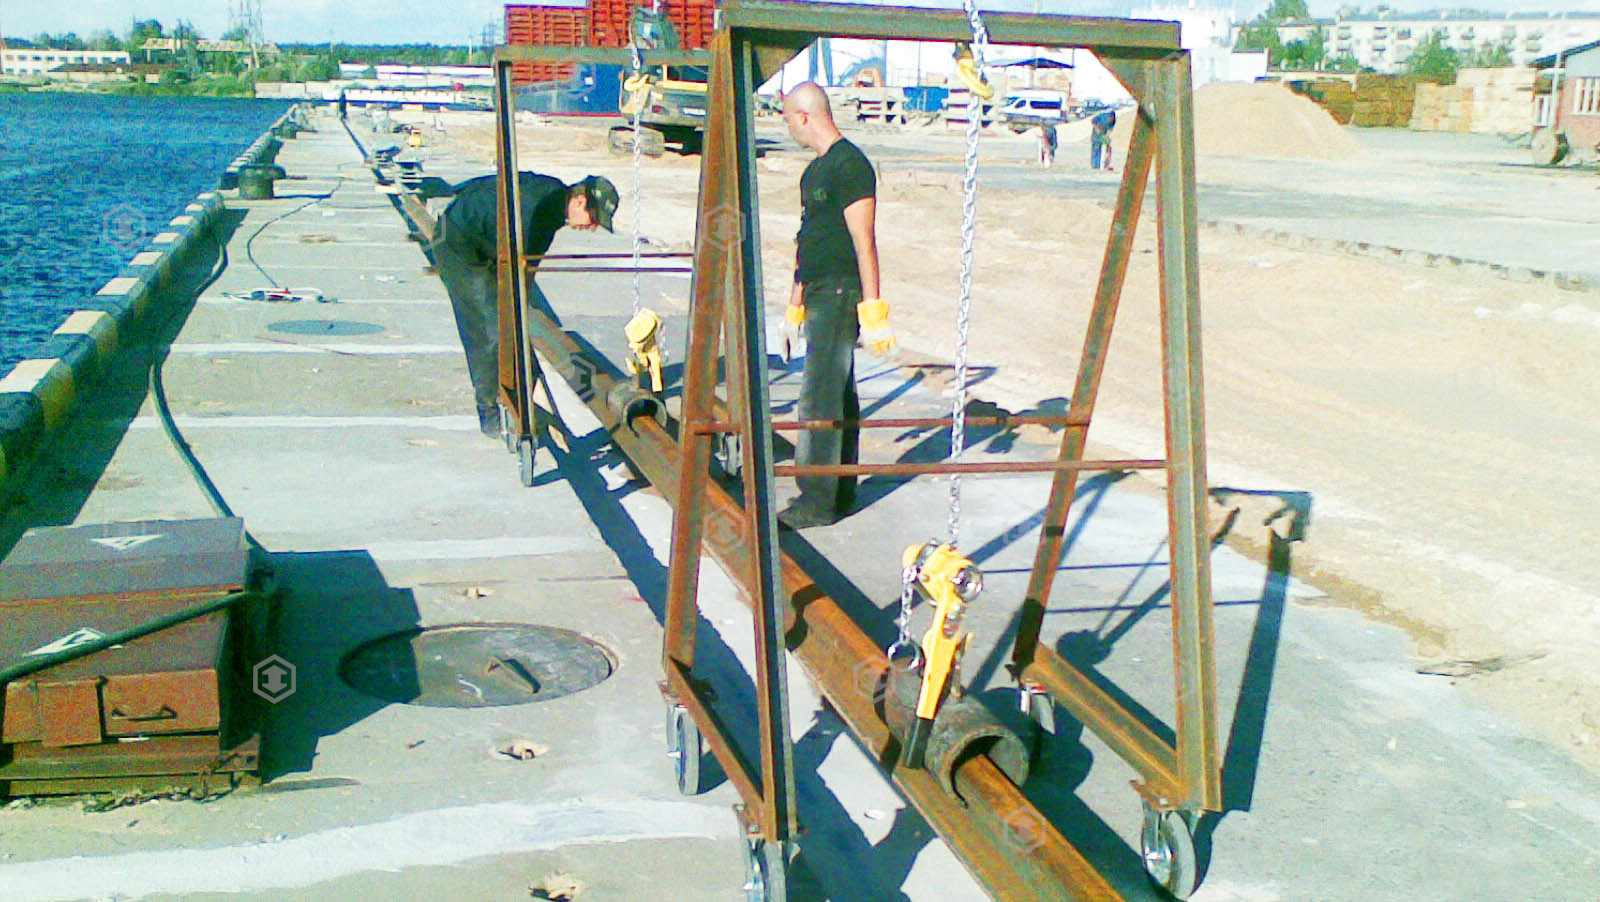 Crane rails mounting and repair services